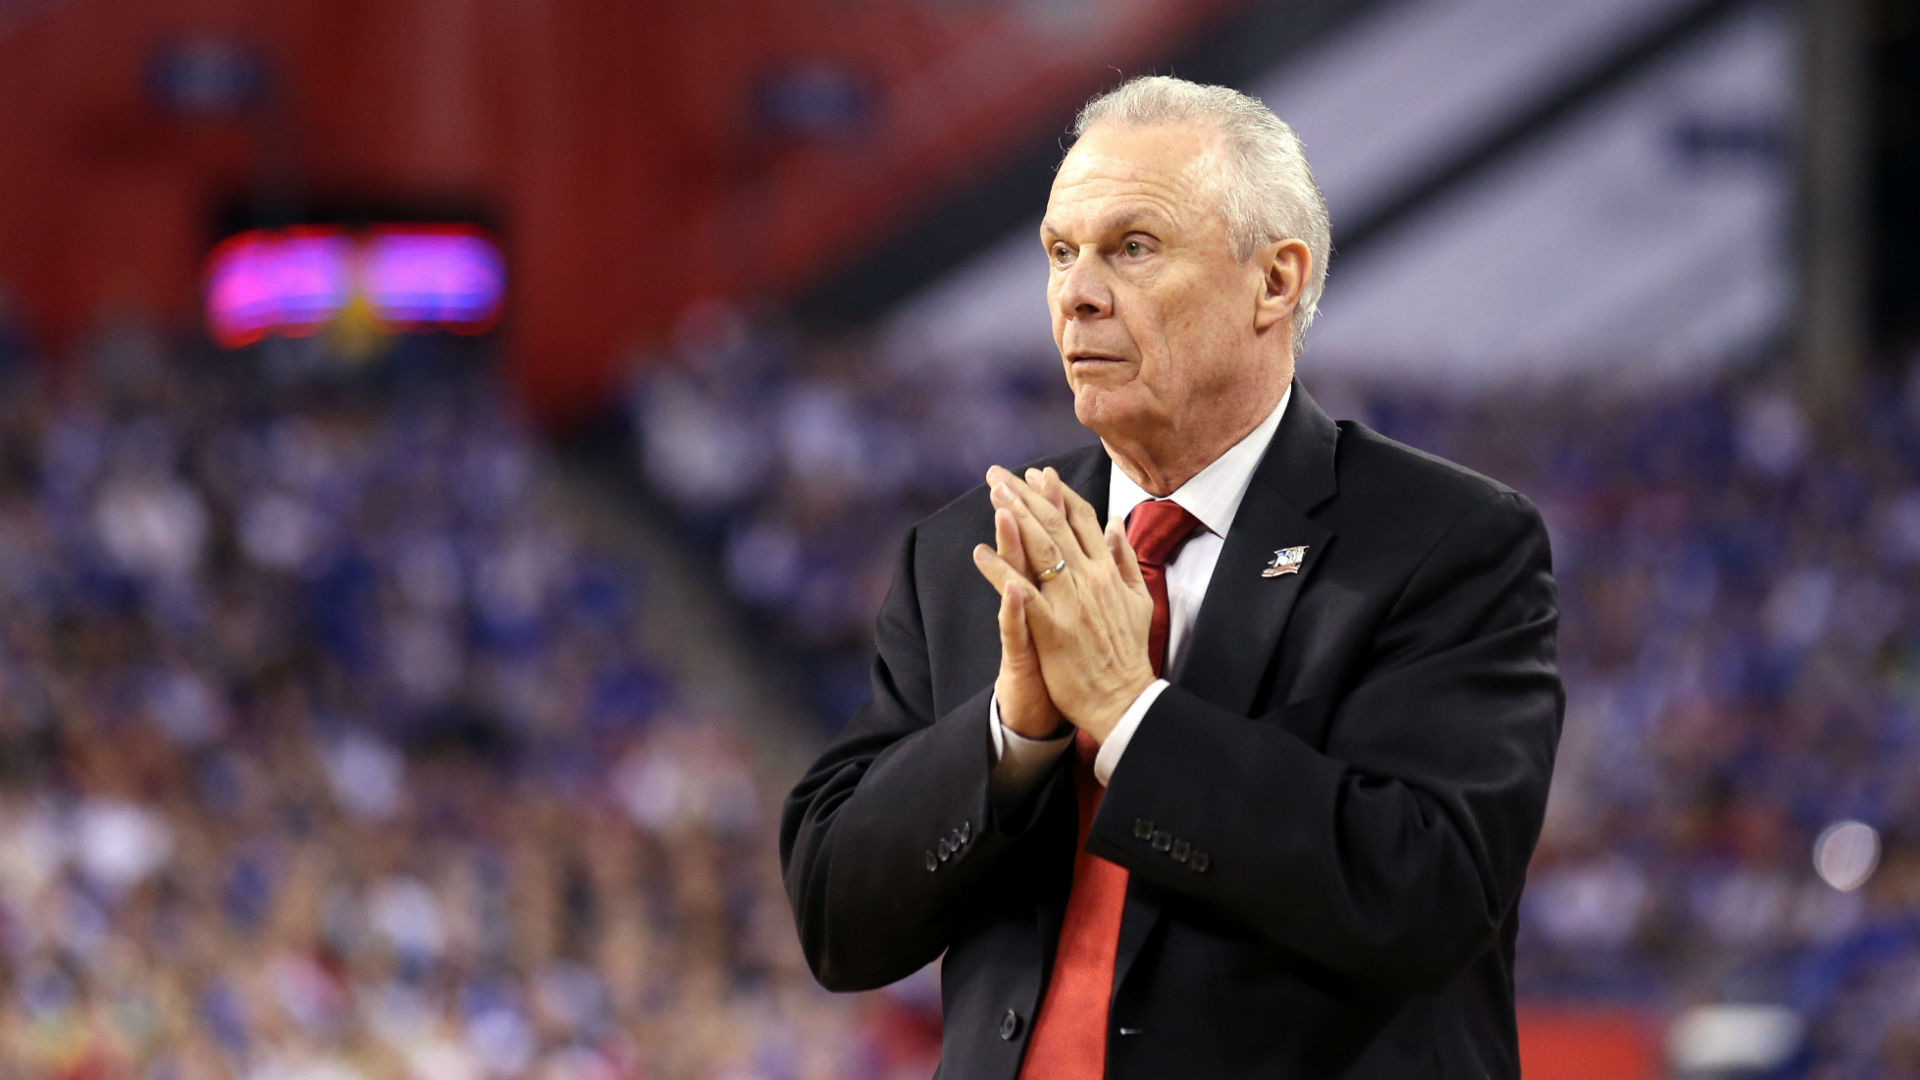 Bo Ryan will coach one final (rebuilding) season at Wisconsin before retirement